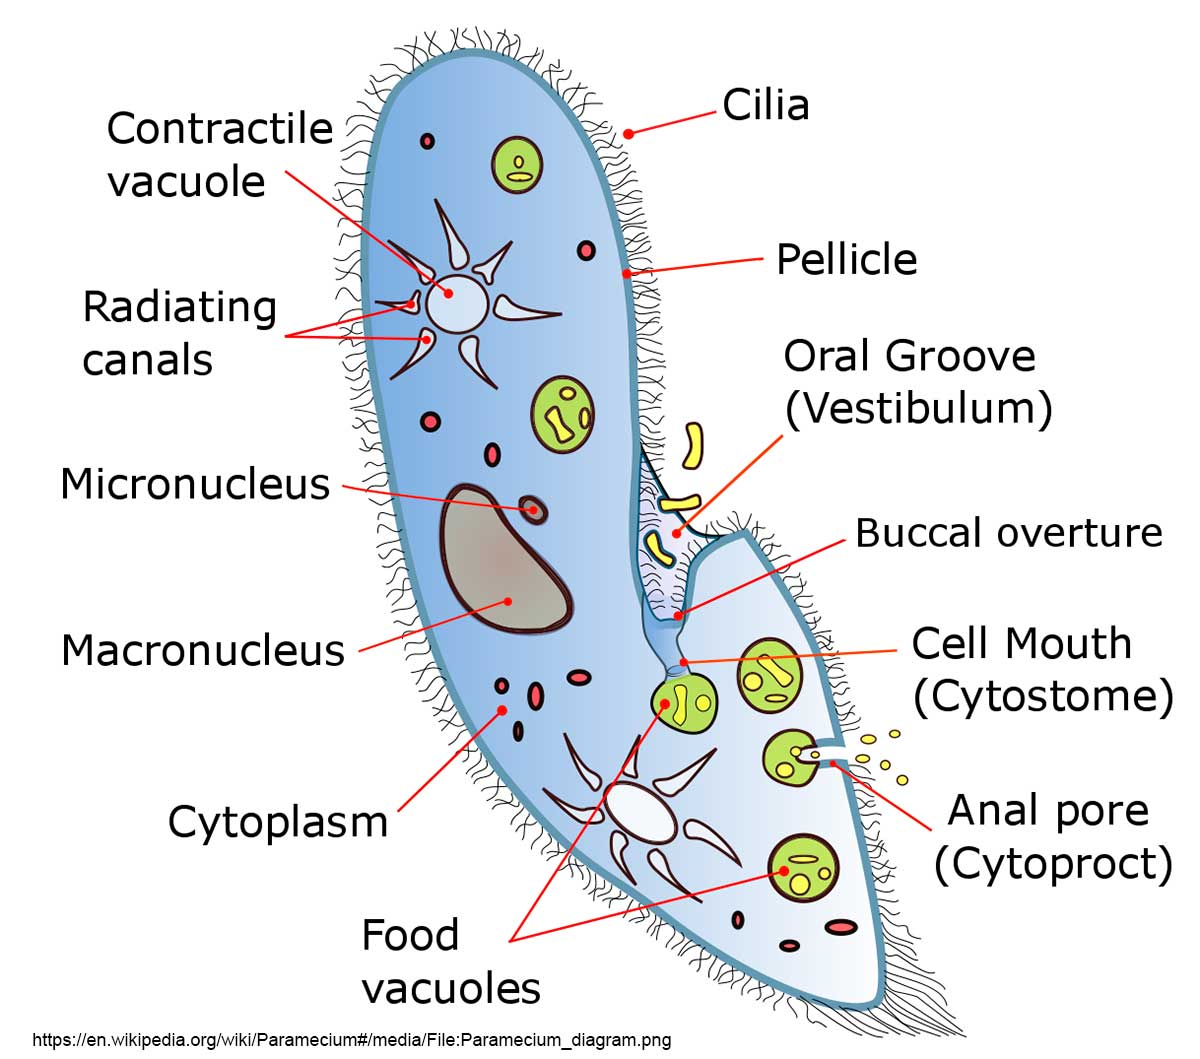 cilia animal cell diagram rheem oil furnace wiring photomicrography and video of protozoa rotifers by